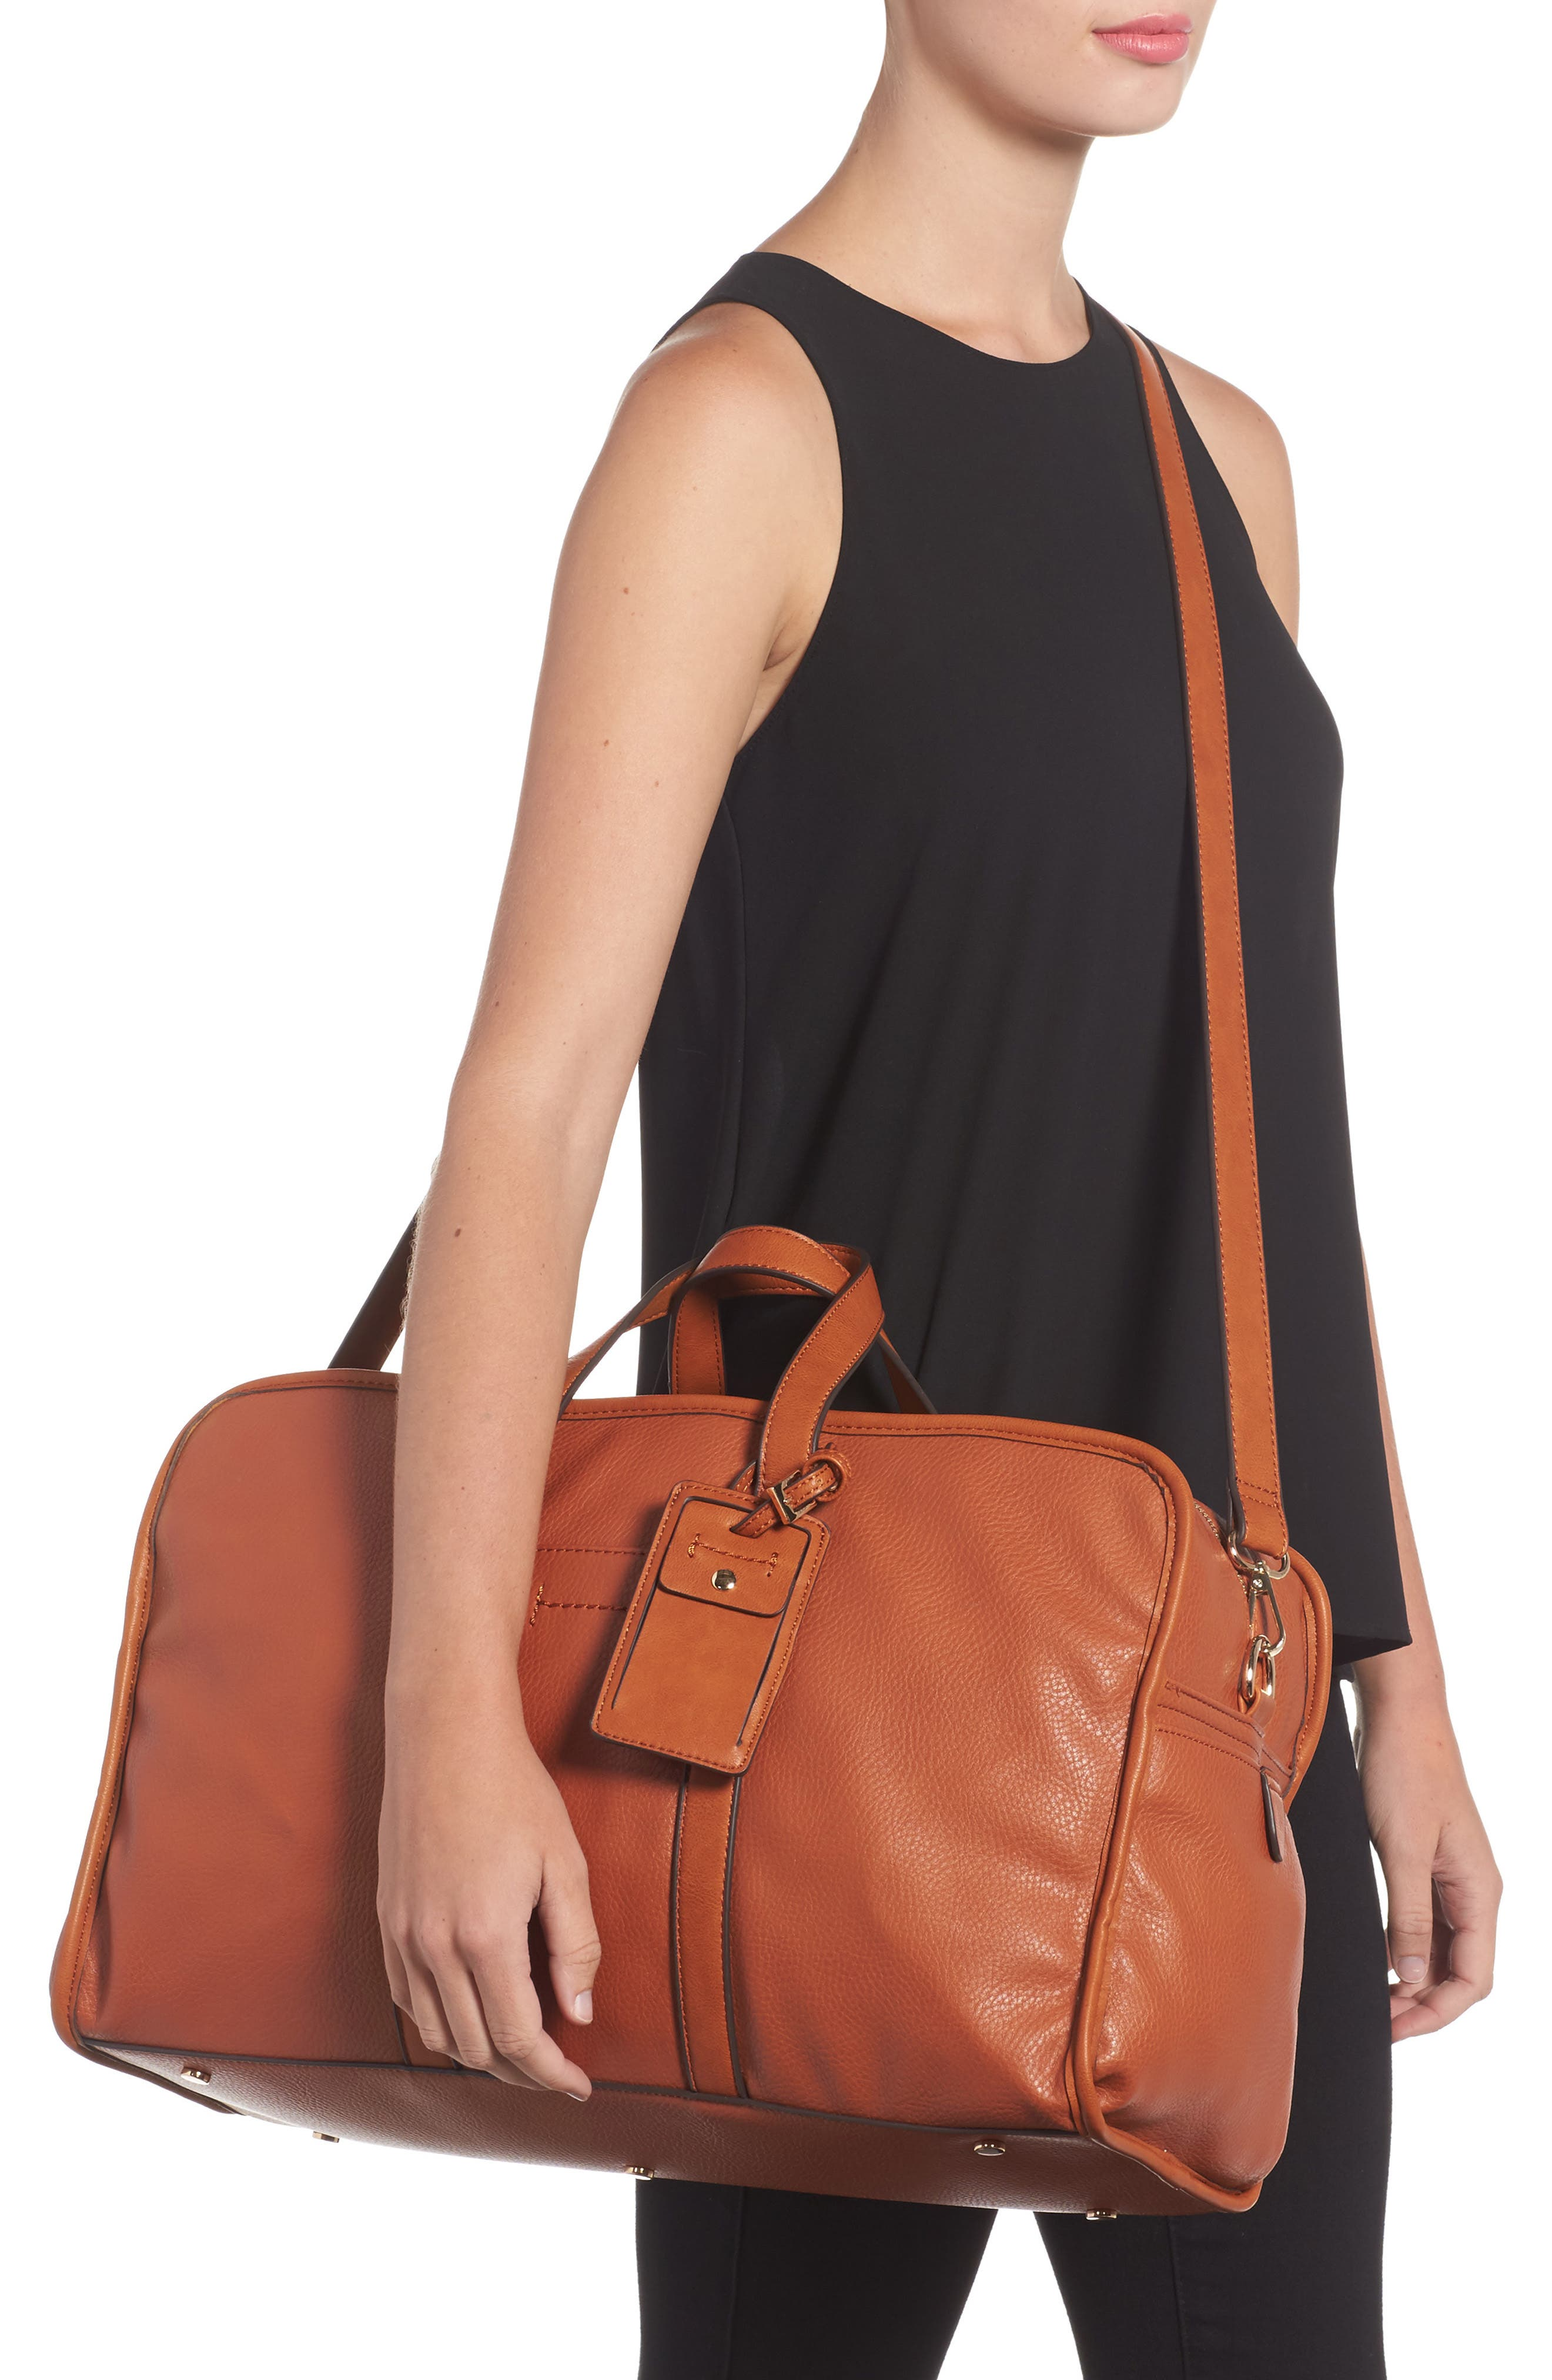 Doxin Faux Leather Duffel Bag,                             Alternate thumbnail 4, color,